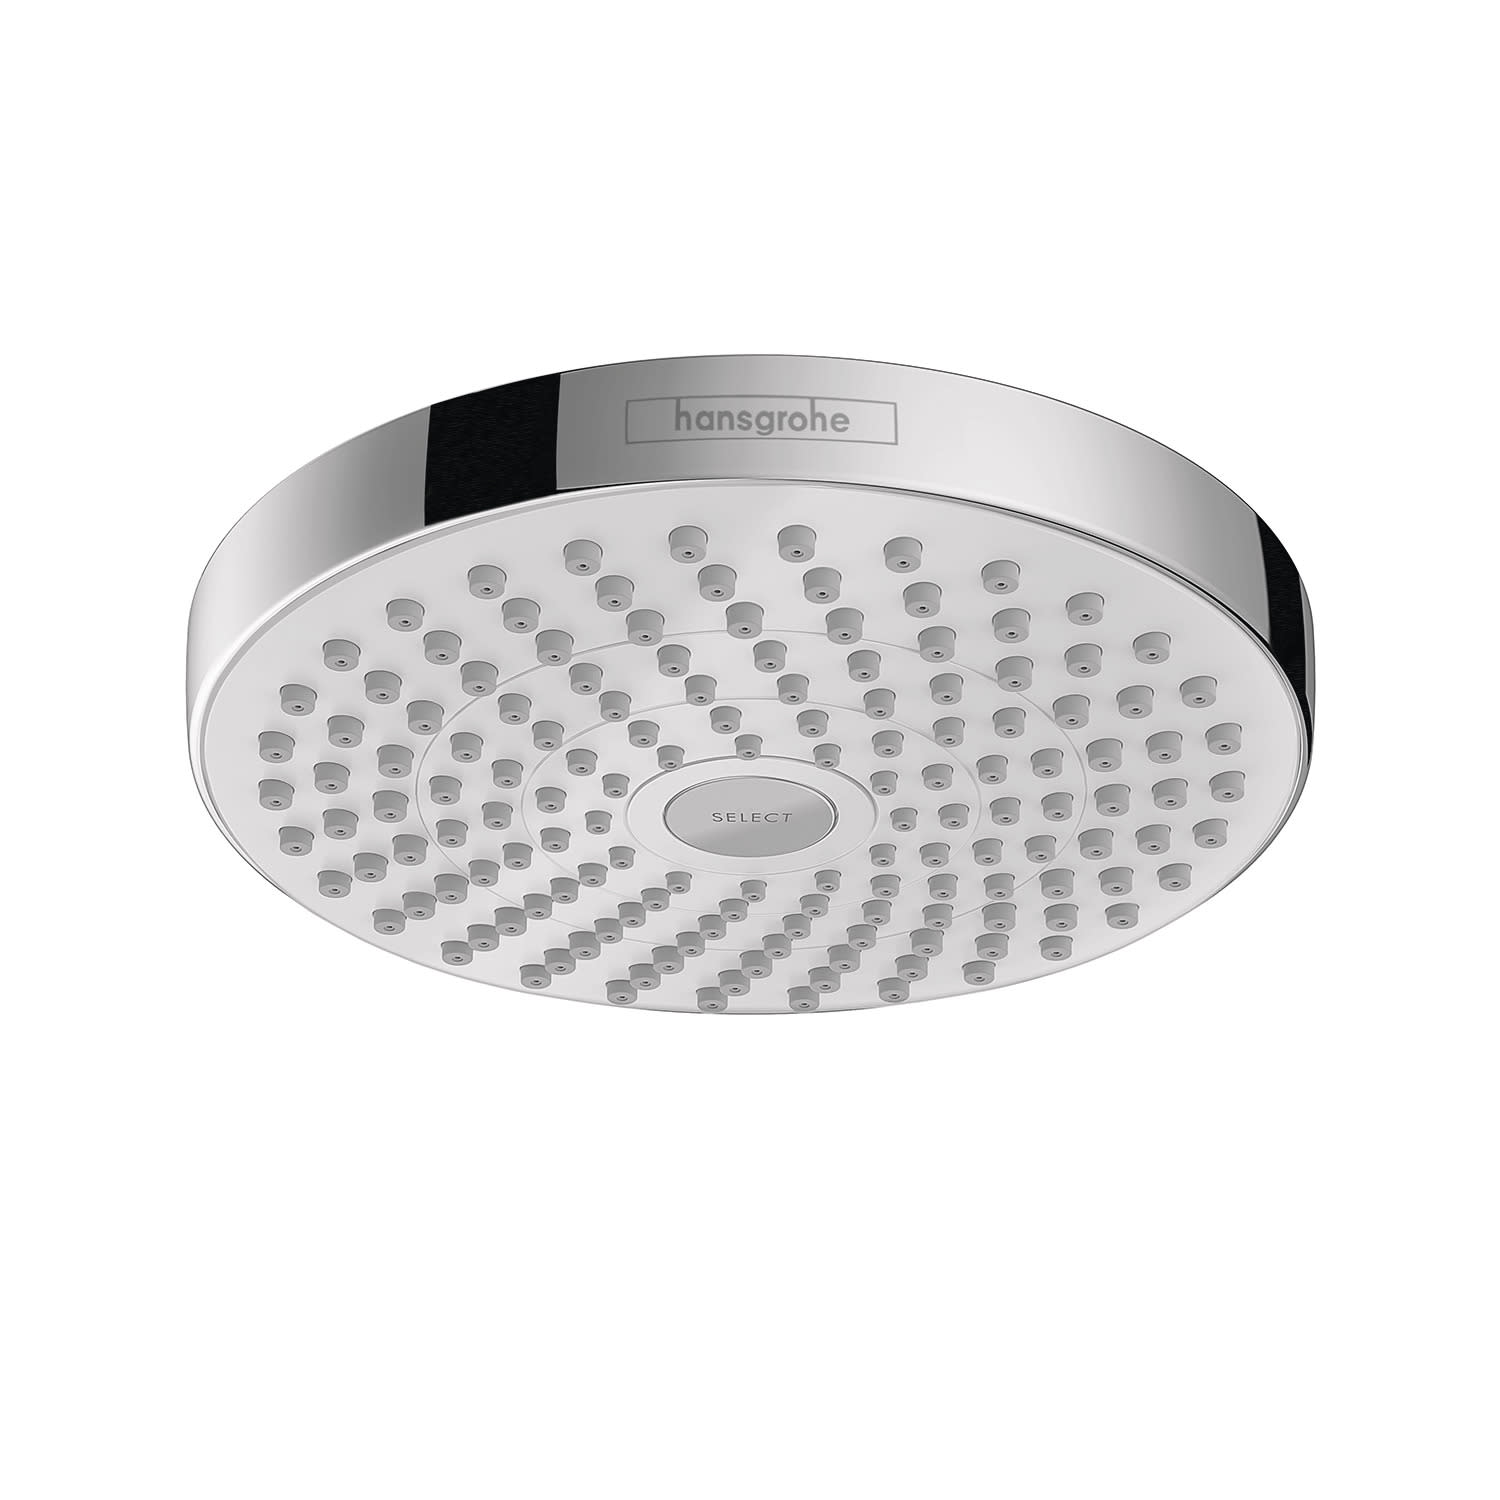 Hansgrohe 04388 Croma Select S 180 Shower Head